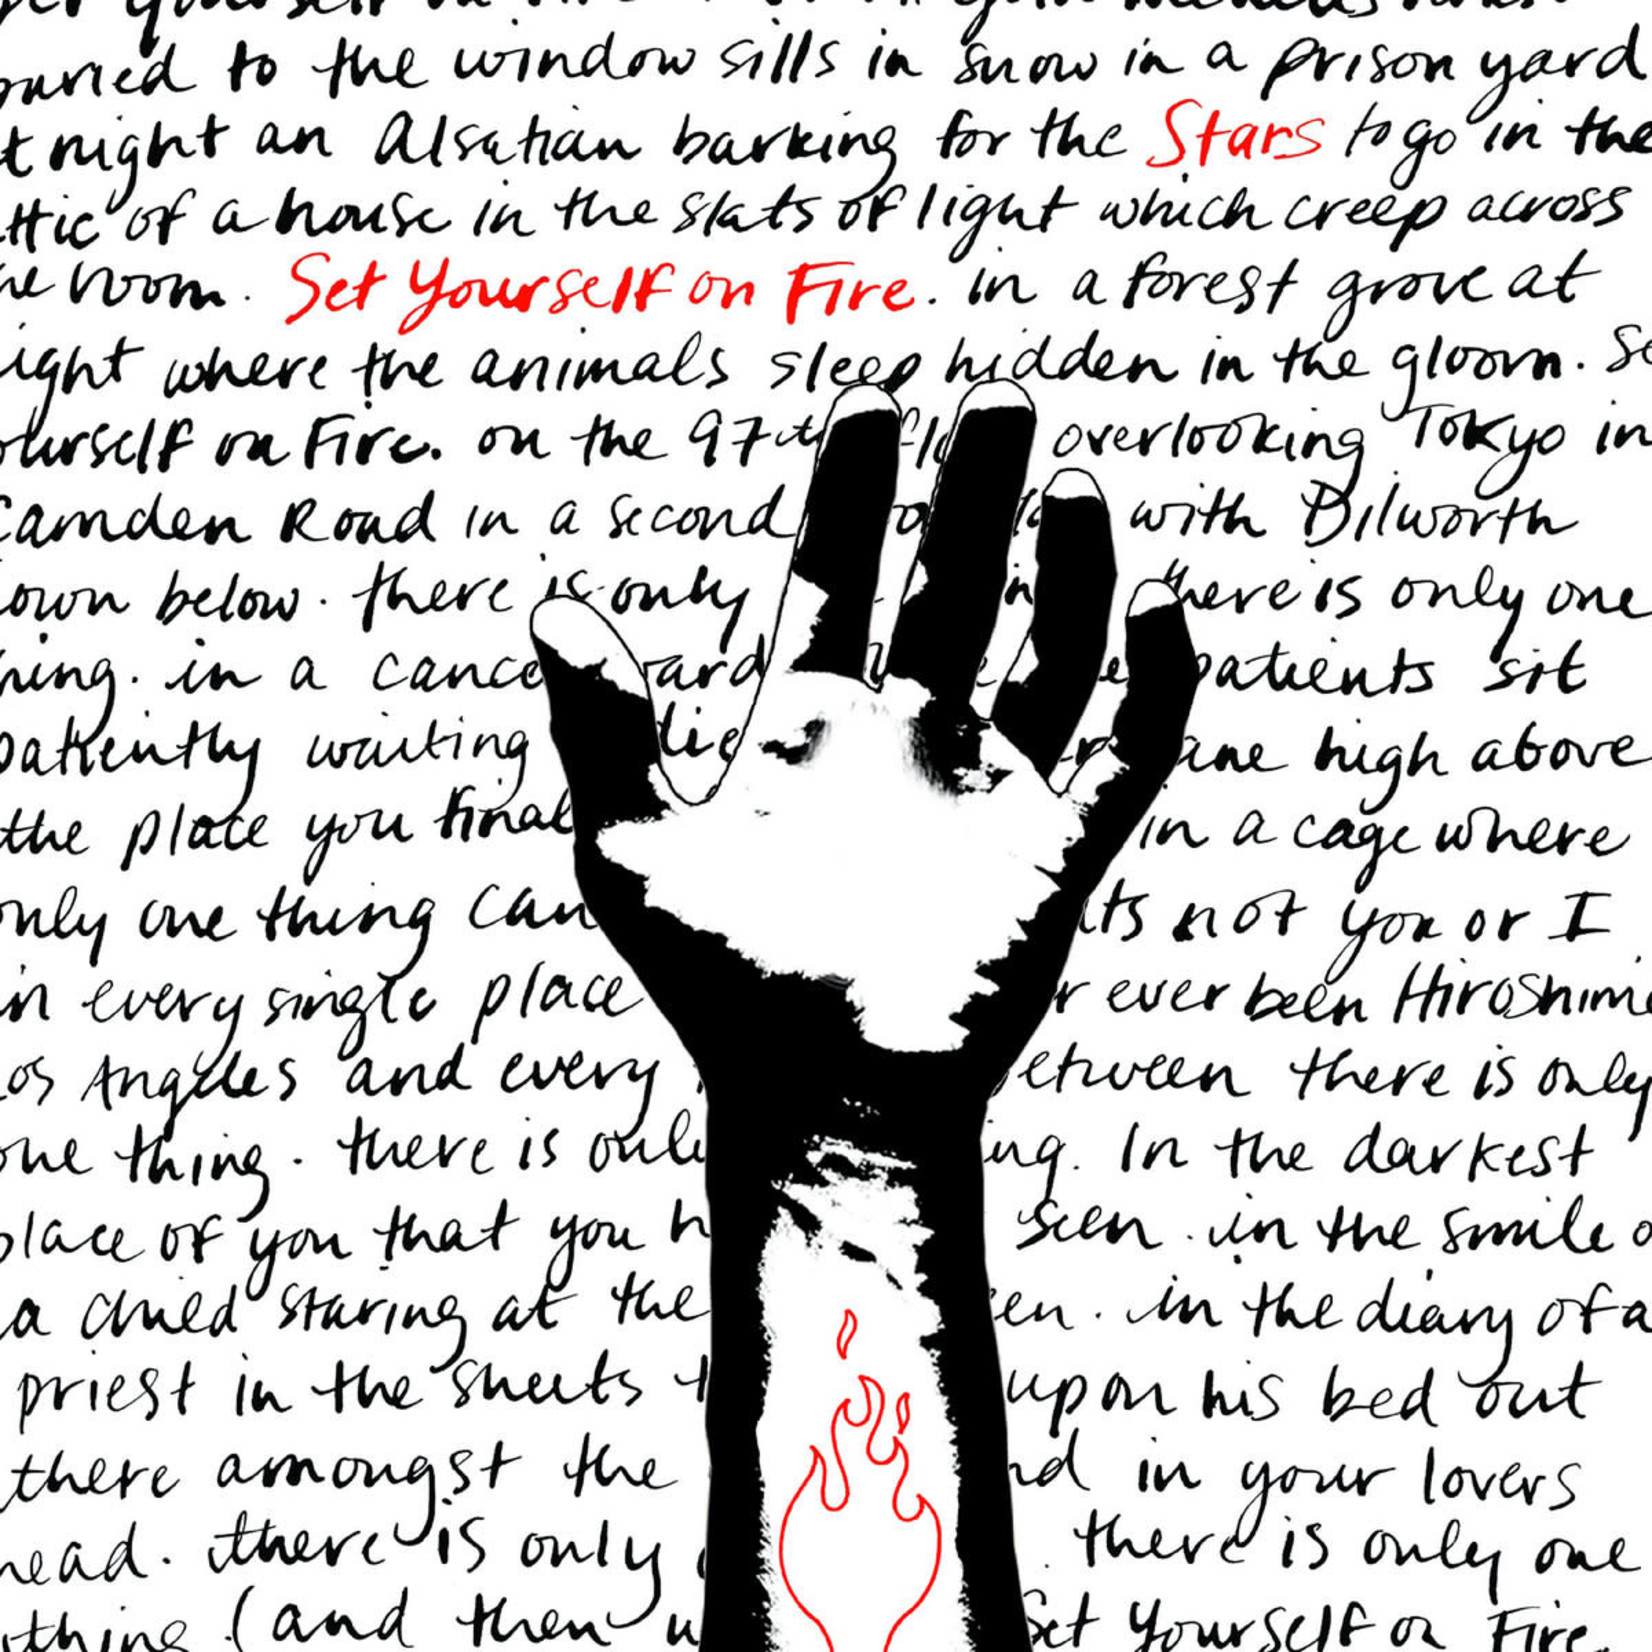 [New] Stars: Set Yourself on Fire